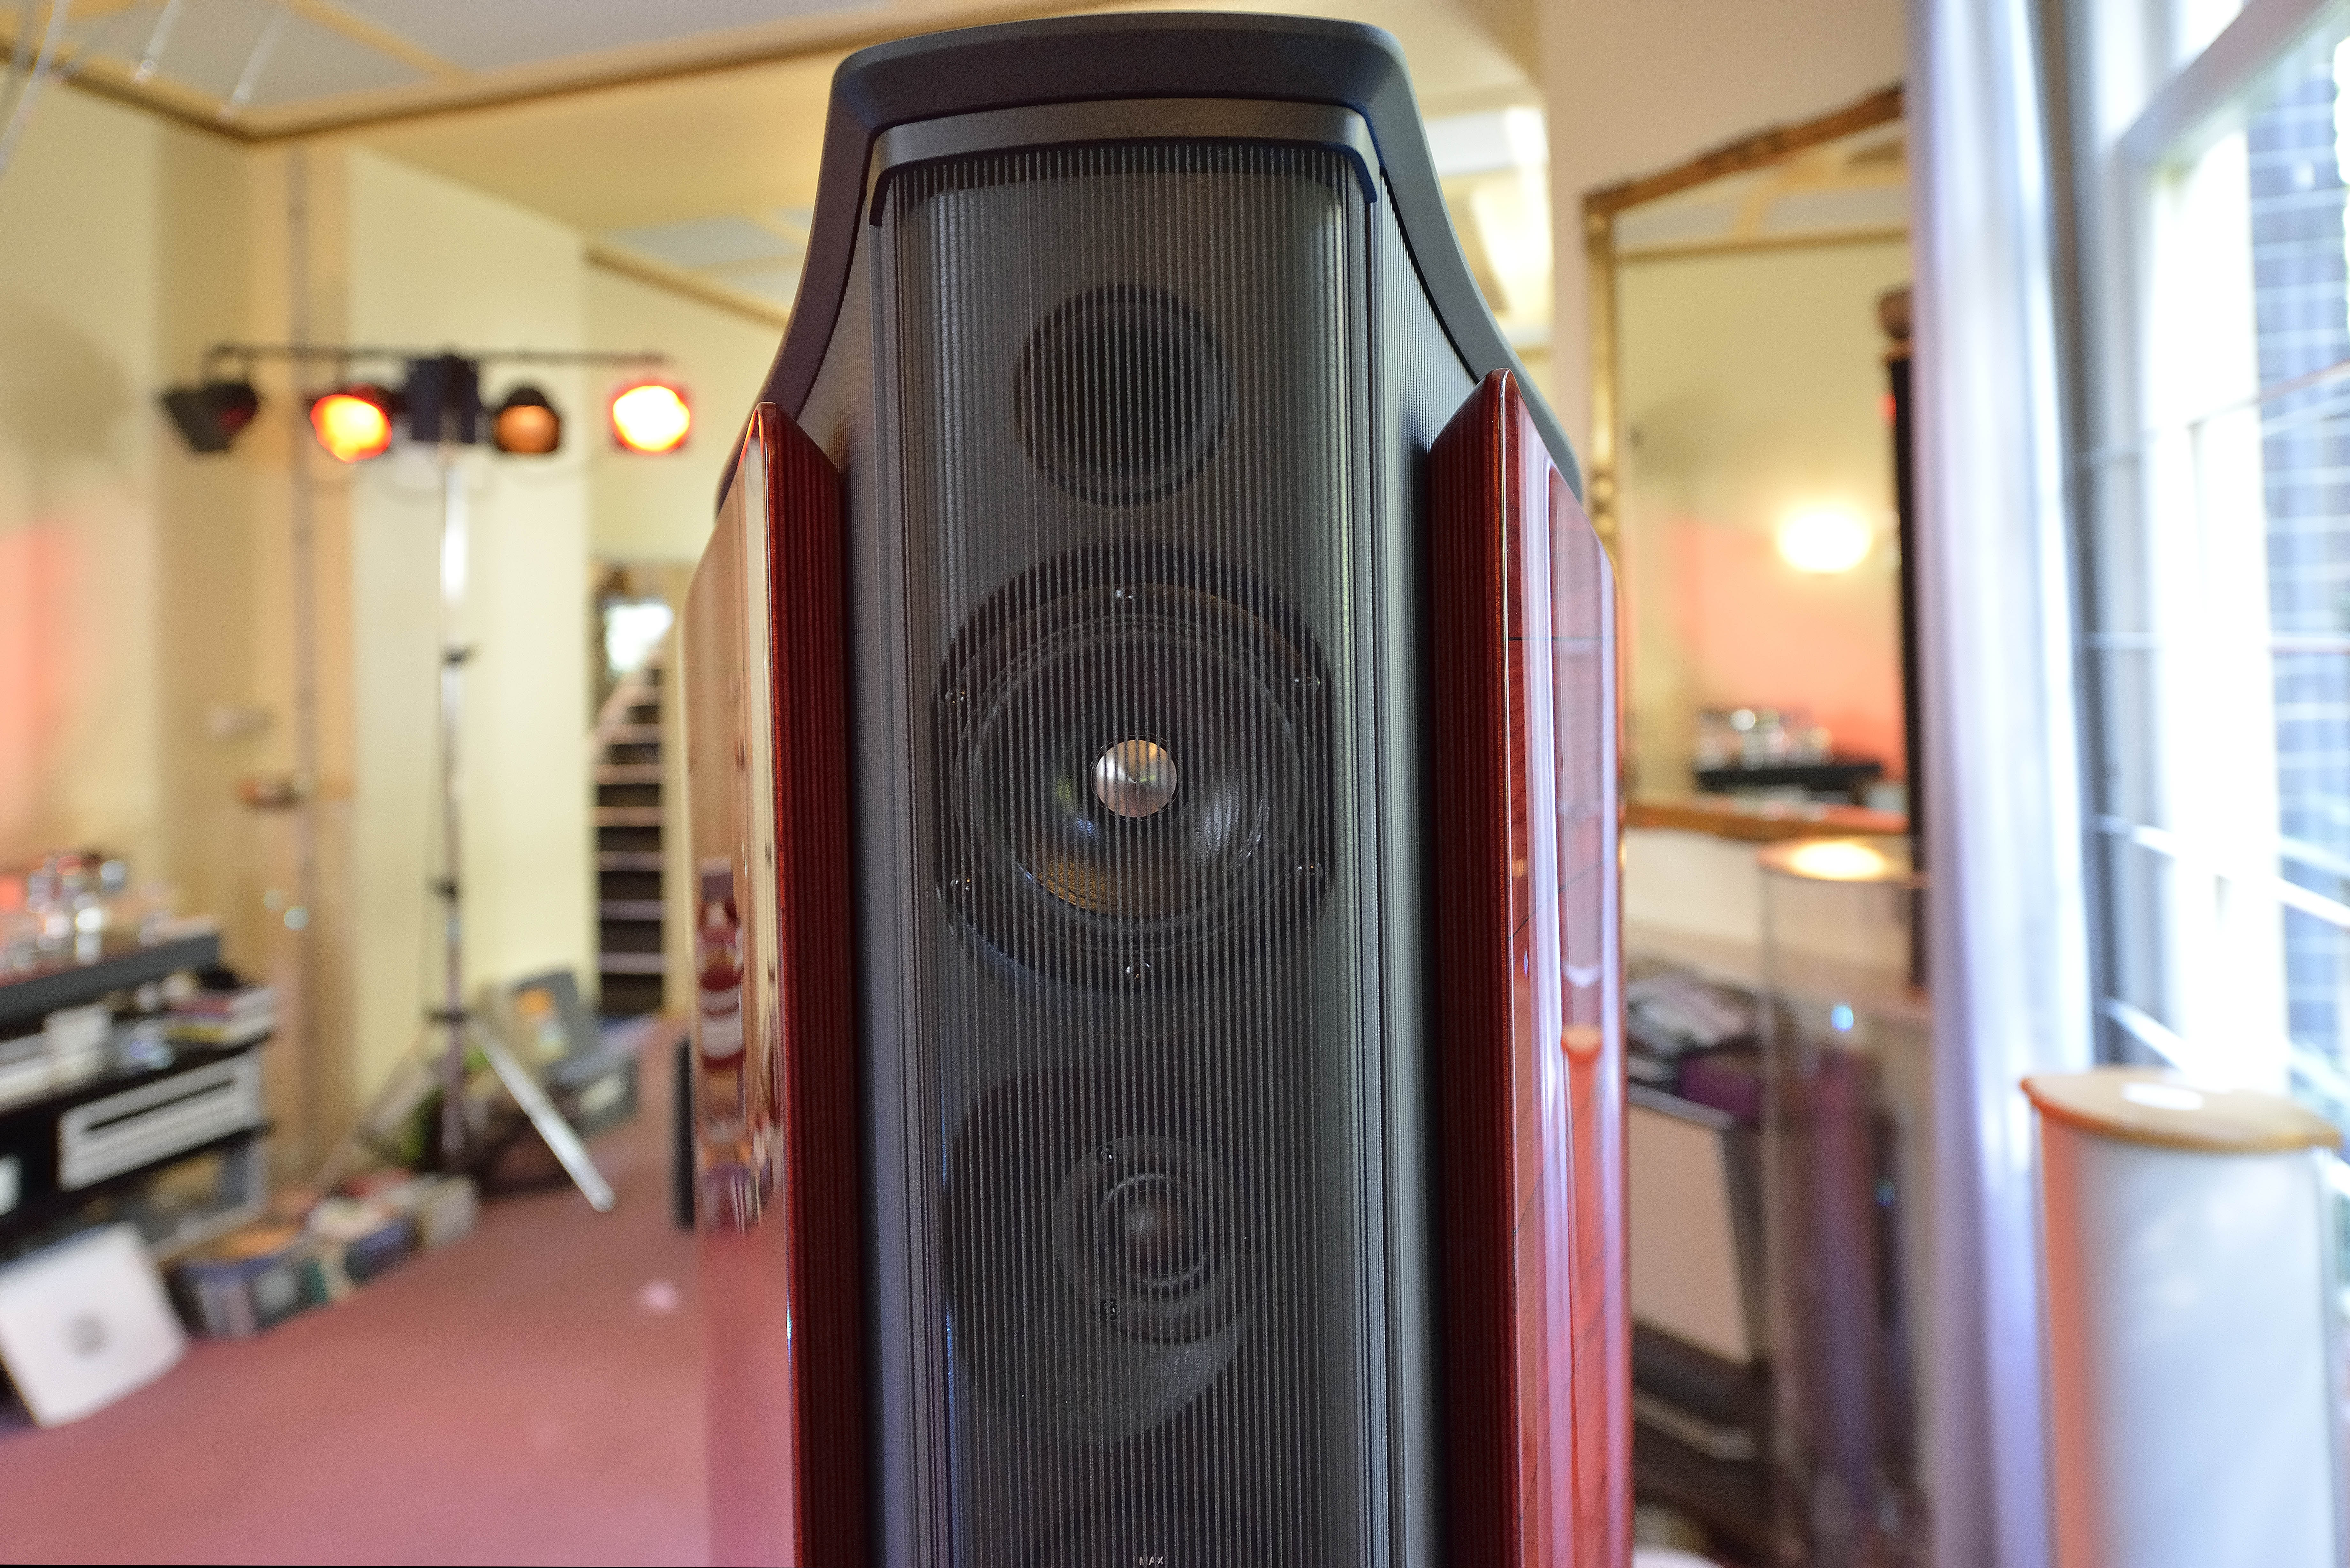 THE DAY AFTER  Rhapsody, Sonus faber Aida and Venere, D